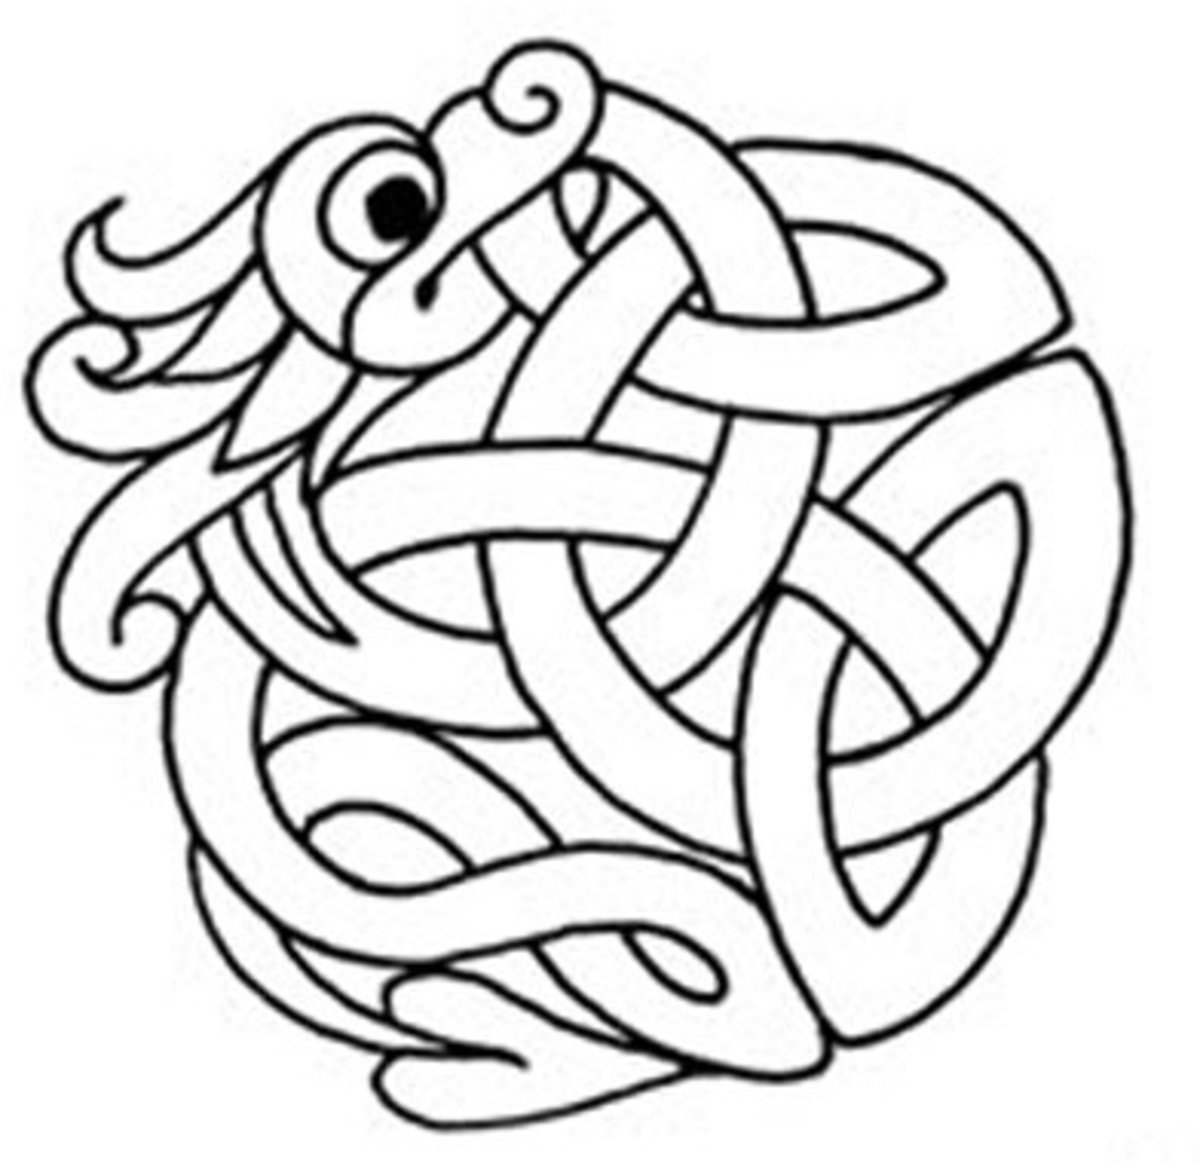 Celtic Design Art Coloring Pages for Kids Colouring Pictures to Print - Serpent